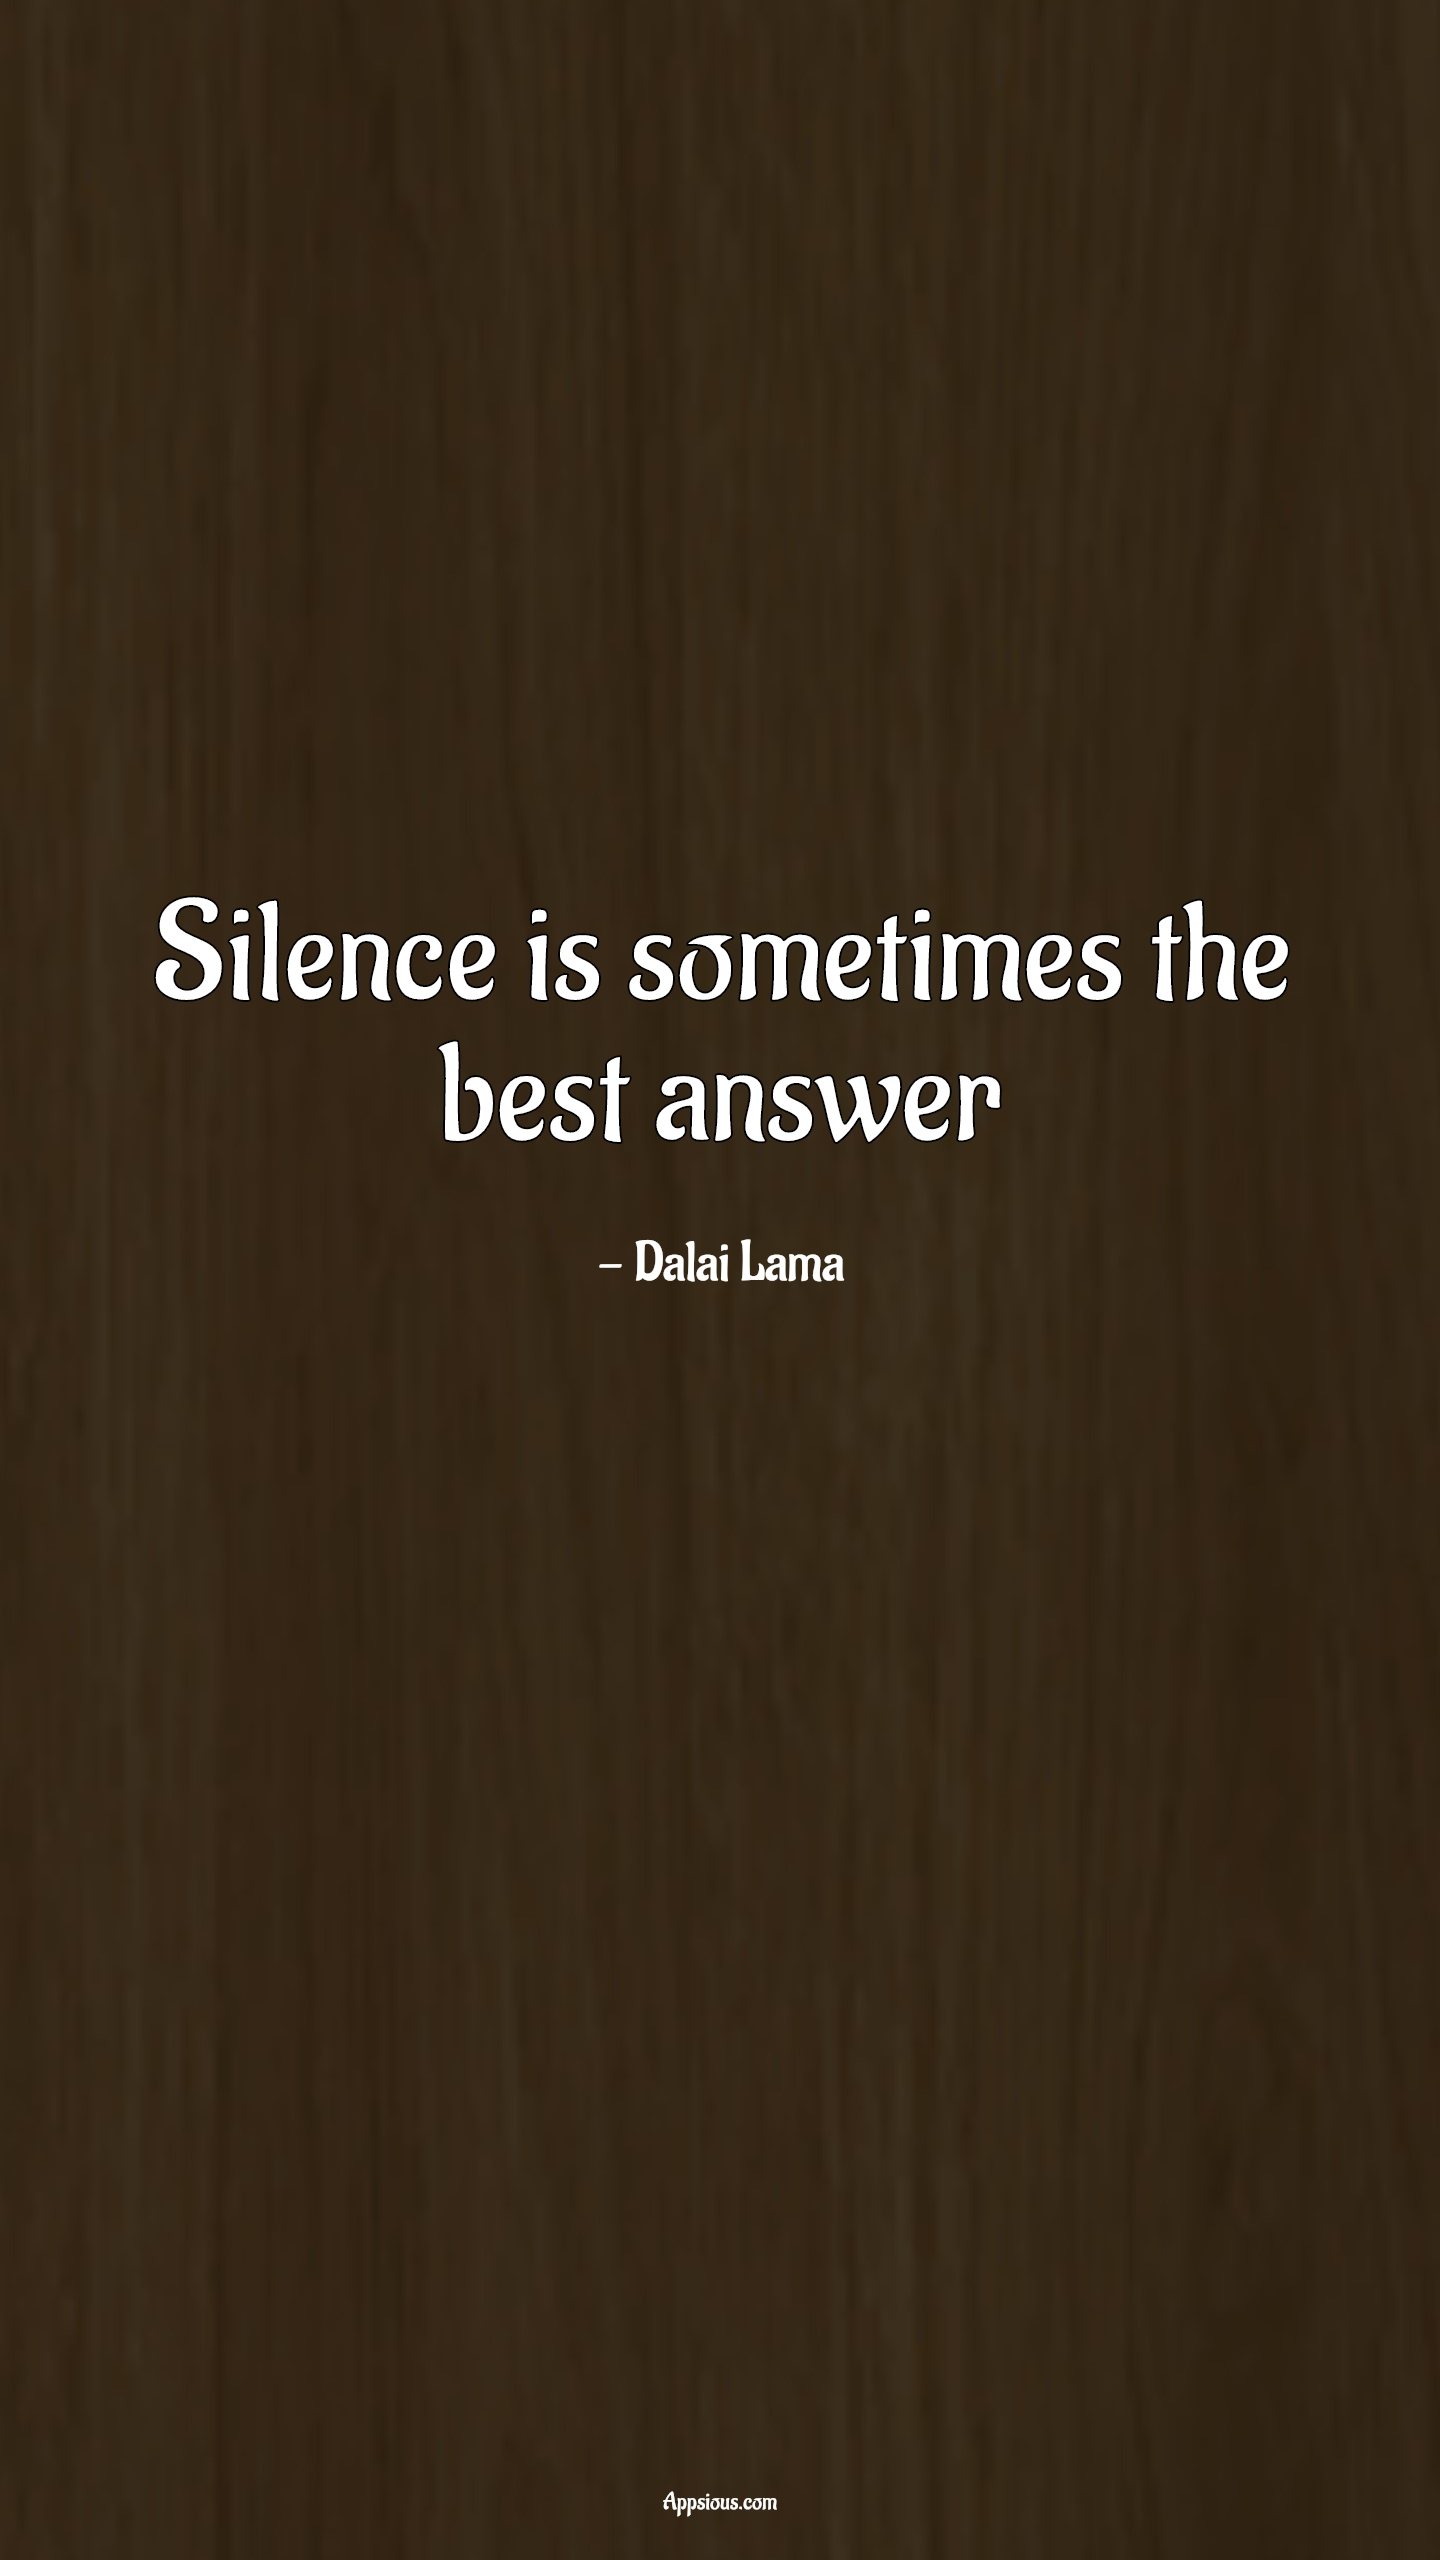 Silence is sometimes the best answer